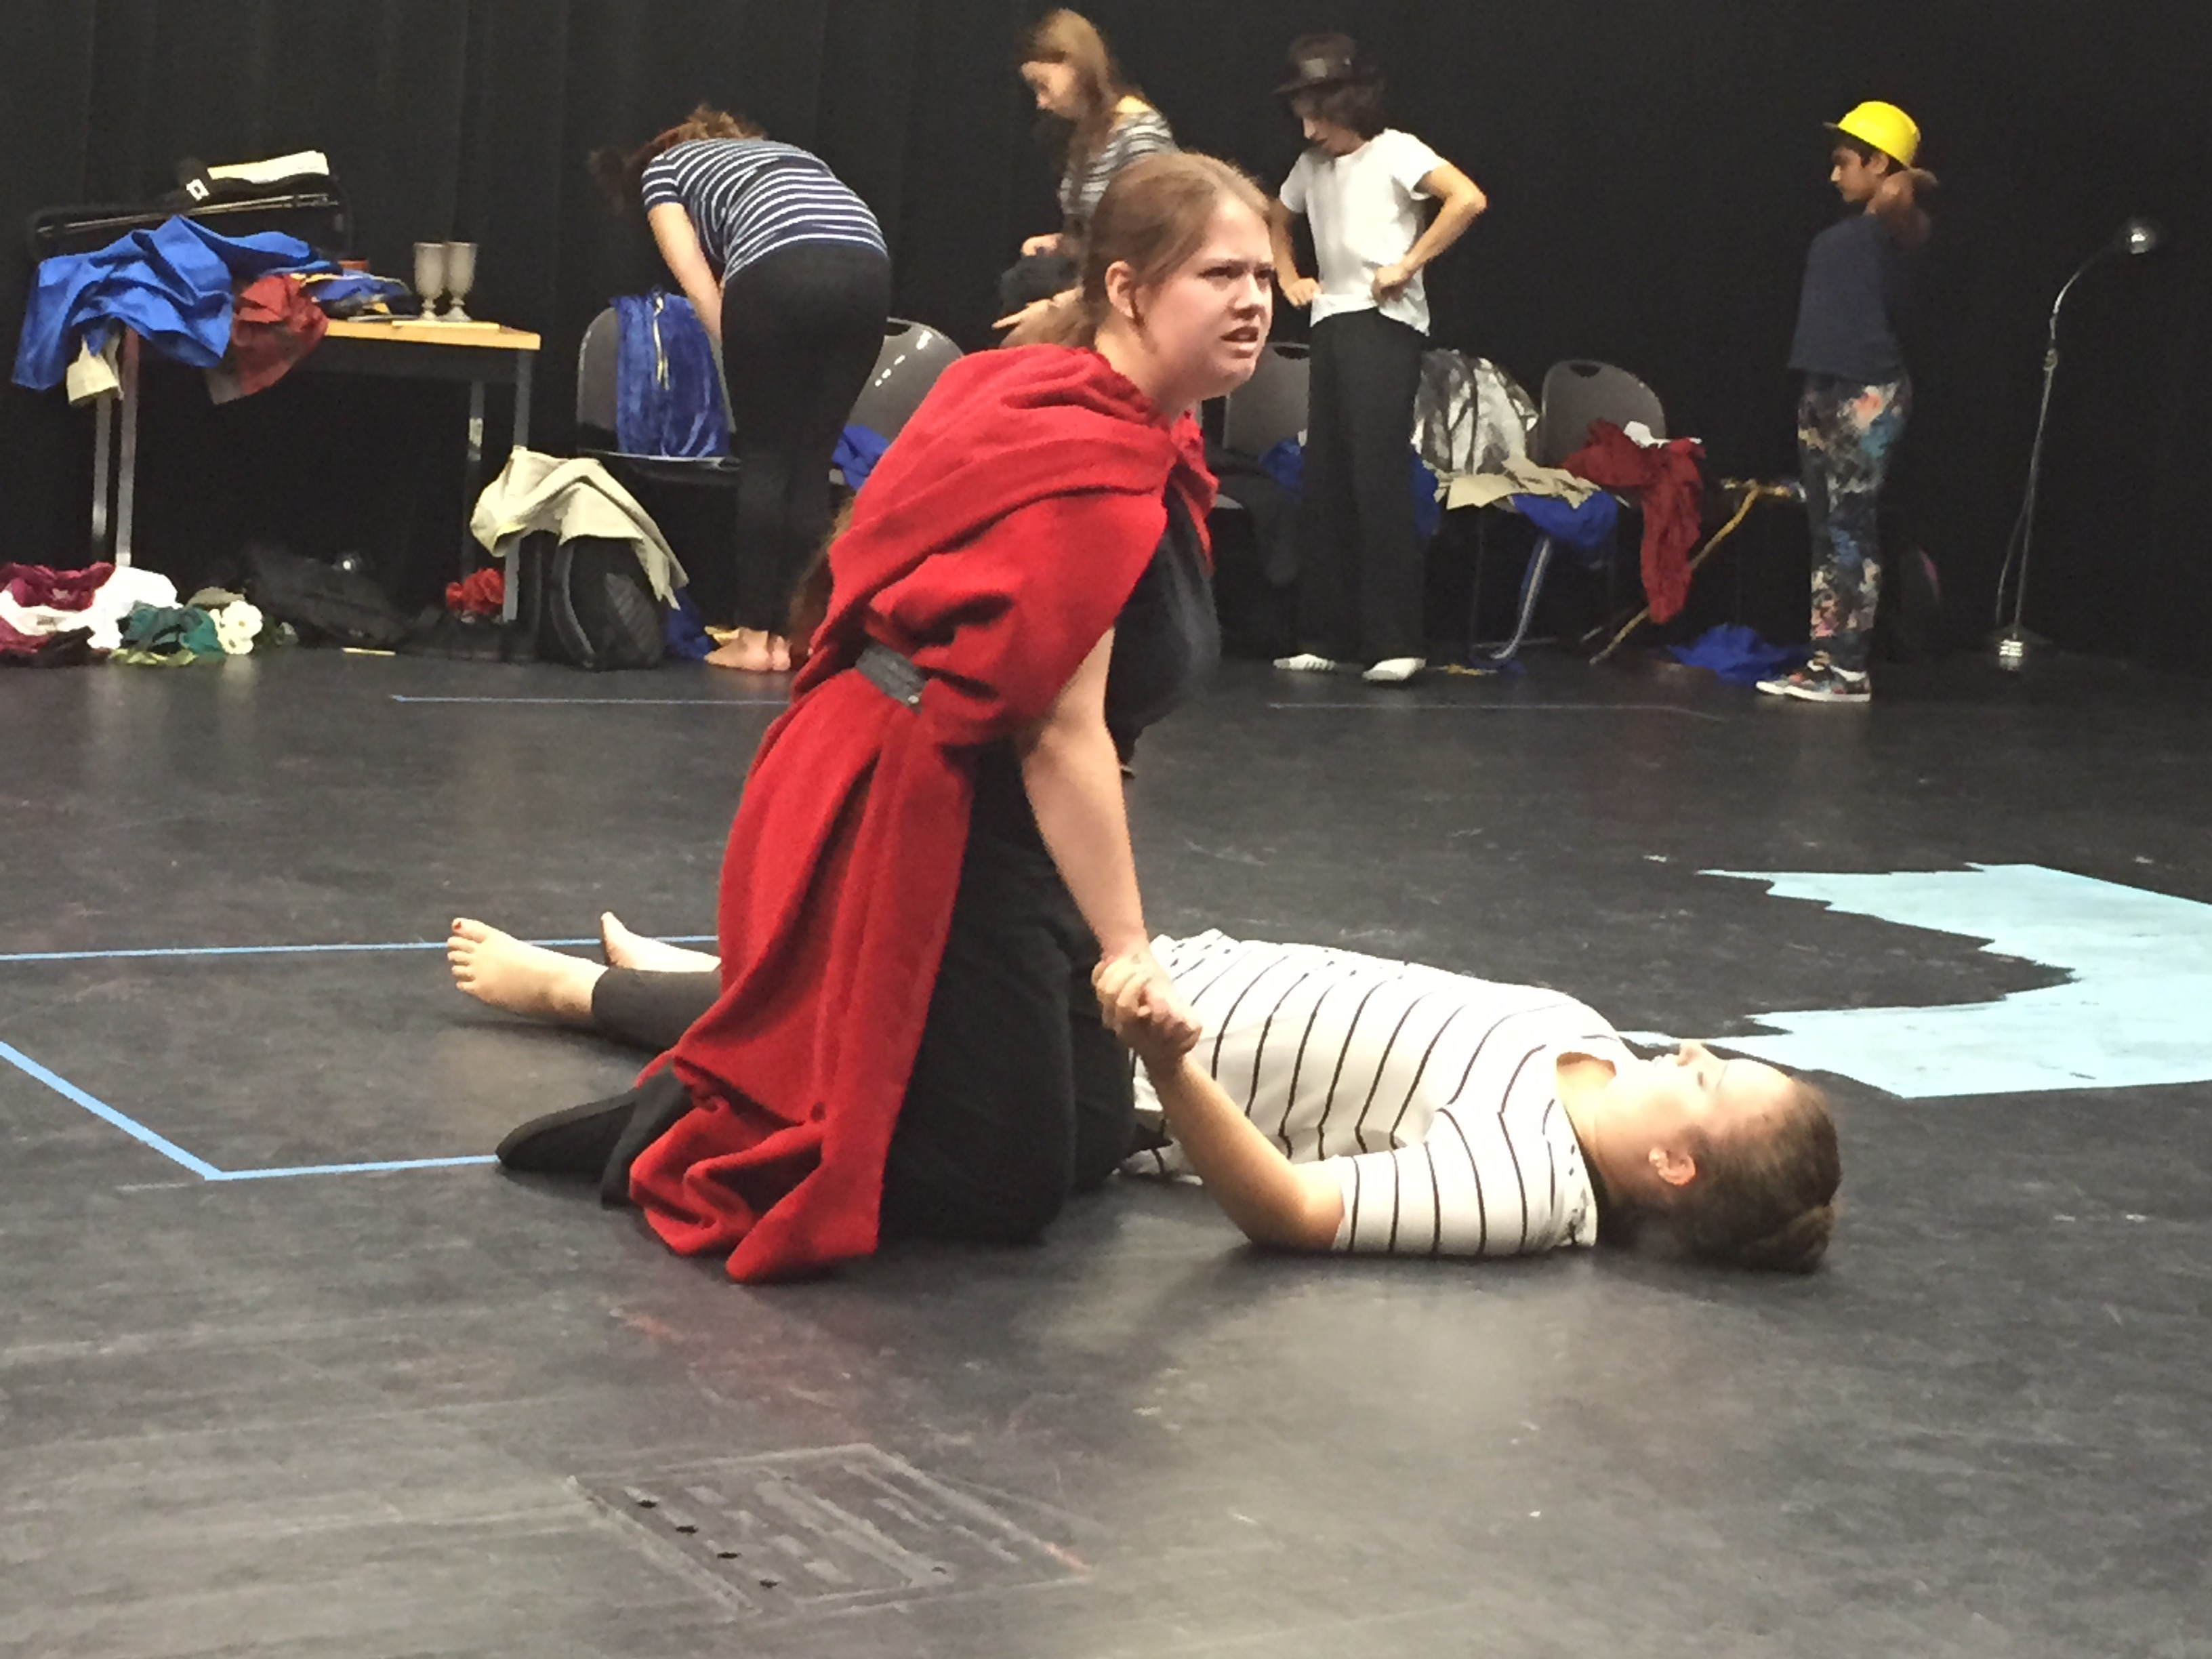 Essays julius caesar play